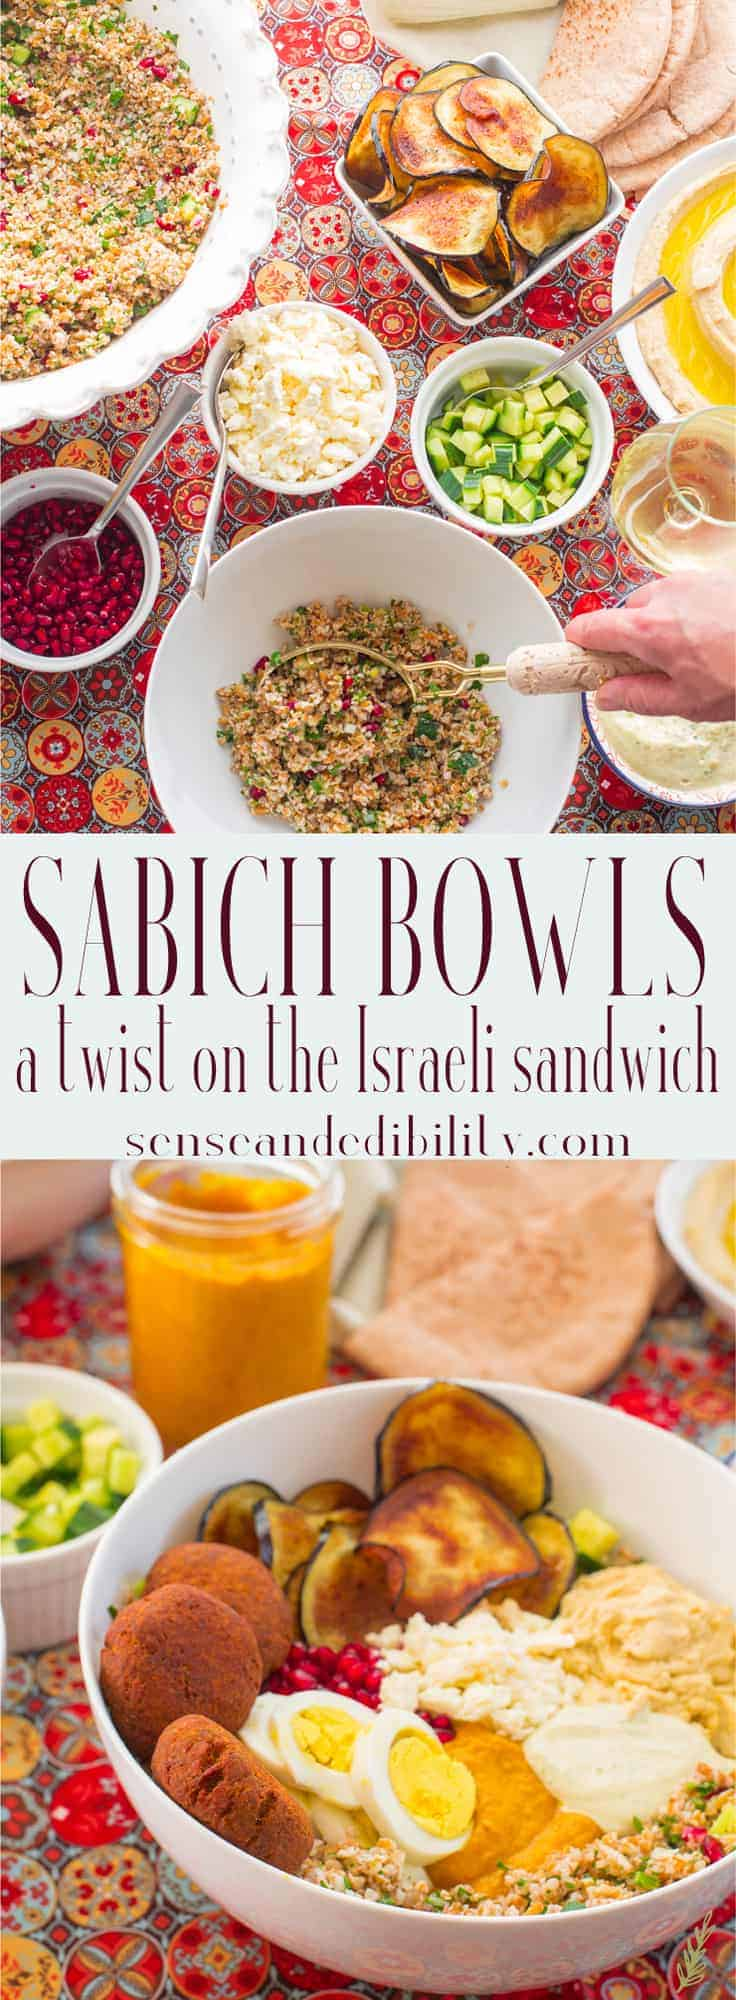 Sabich sandwiches are a favorite in the Middle East. I've made them into a hearty vegan bowl perfect for your next lunch. #sabich #Israeli #MiddleEastern #Meditteranean #eggplant #hummus #tahini #tabouleh #amba #mango #pickledmango #bulgur #sabichsandwich #lunch #middays #entrees #vegan #vegetarian via @ediblesense